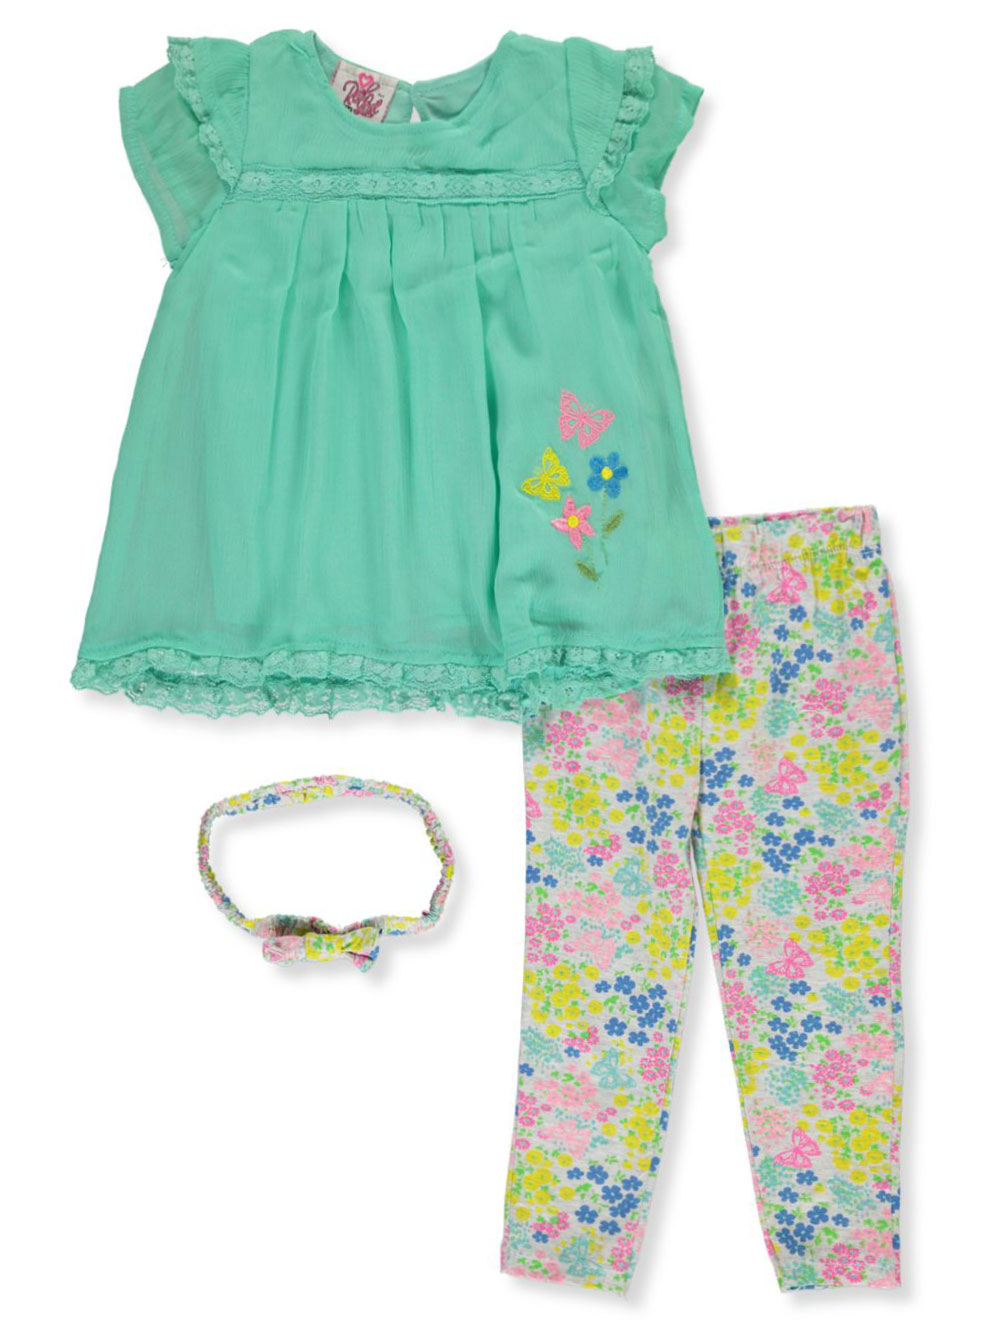 Pink and Multicolor Pant Sets